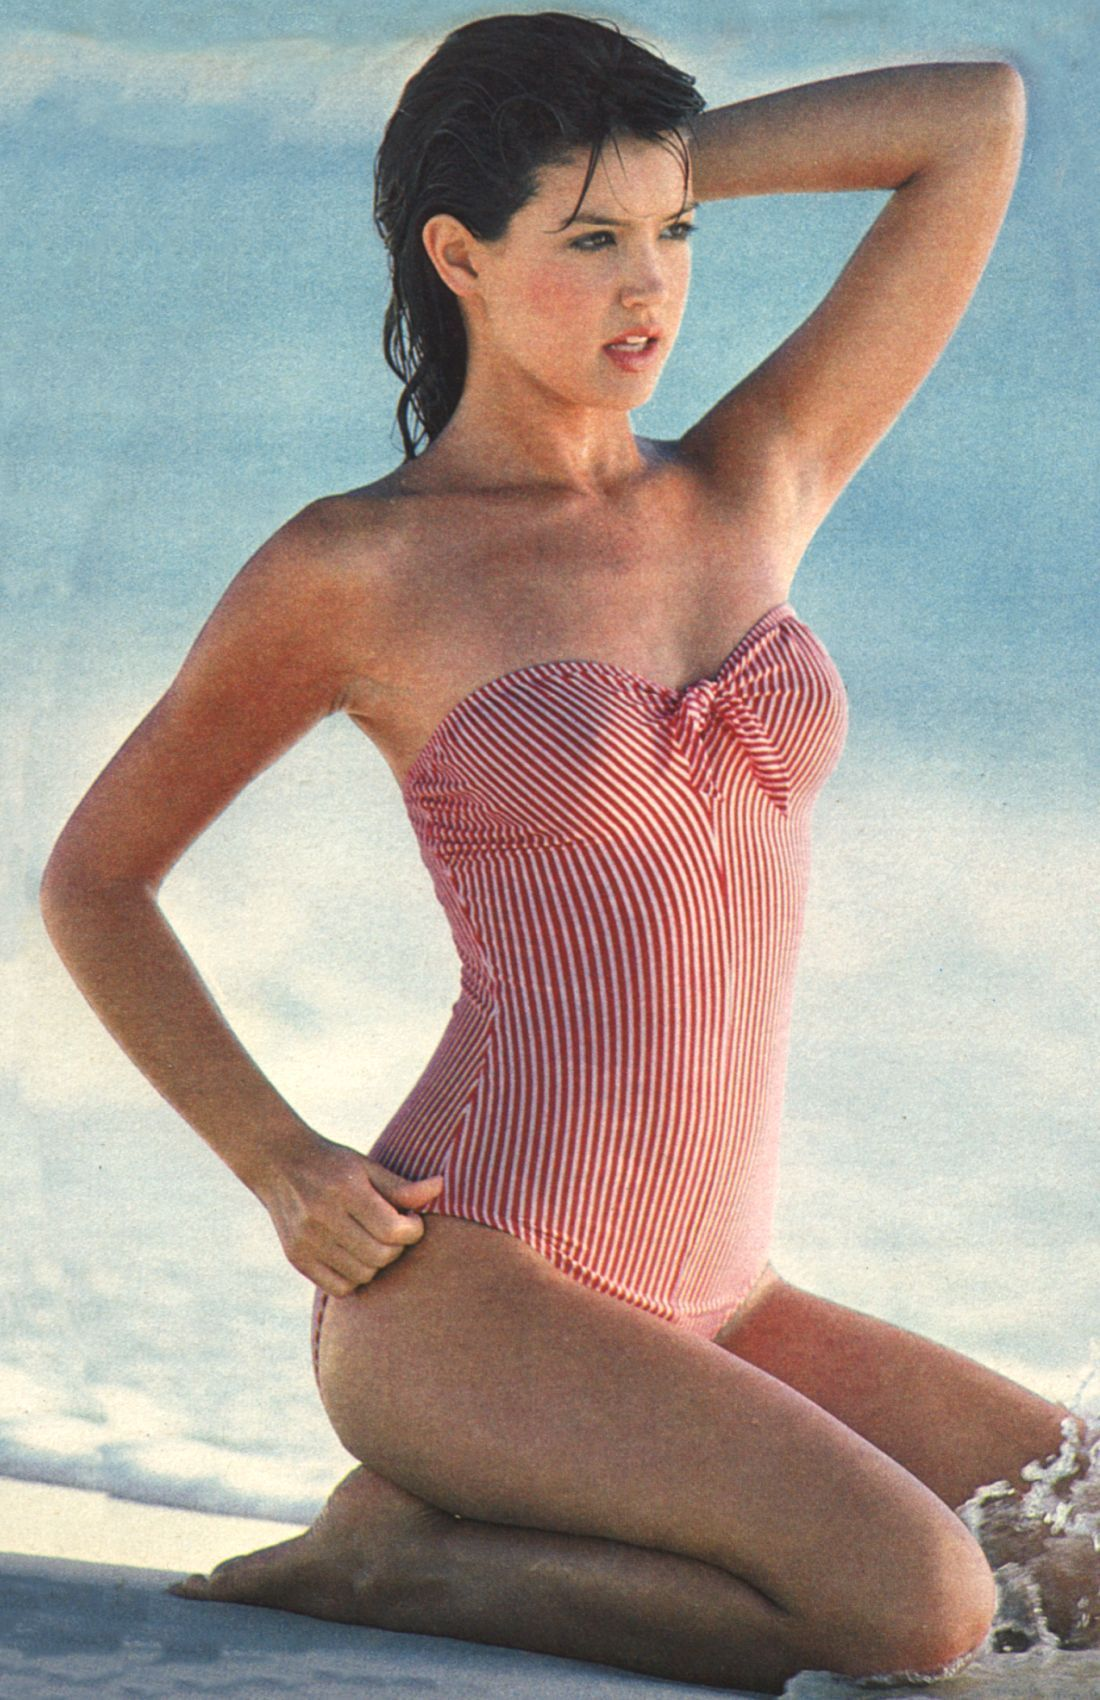 Phoebe Cates attended Professional Children's School in New York City and ...